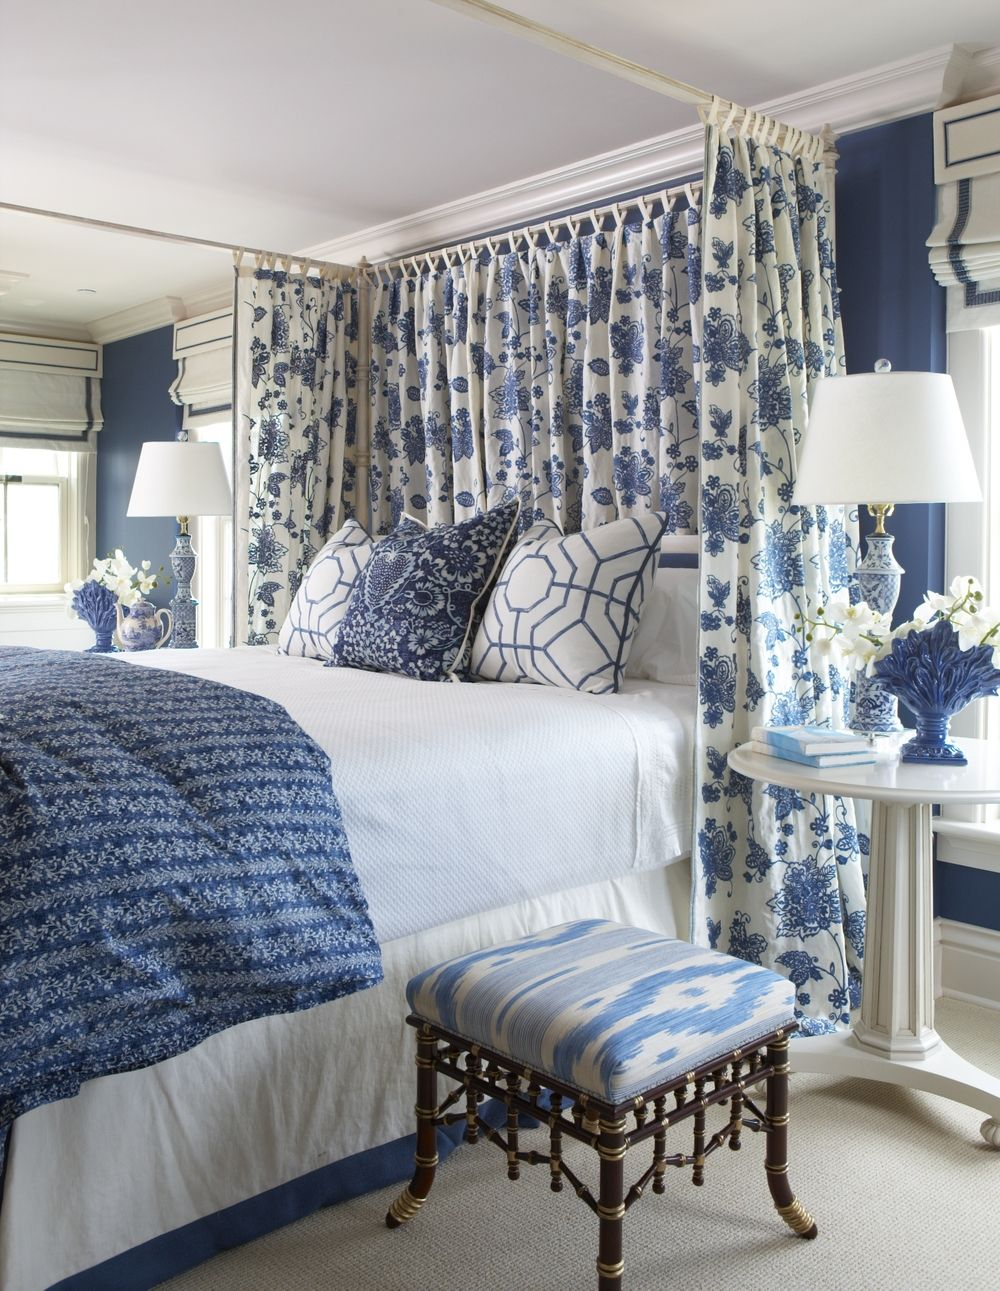 Blue And White Master Bedroom With Floral Drapes For A